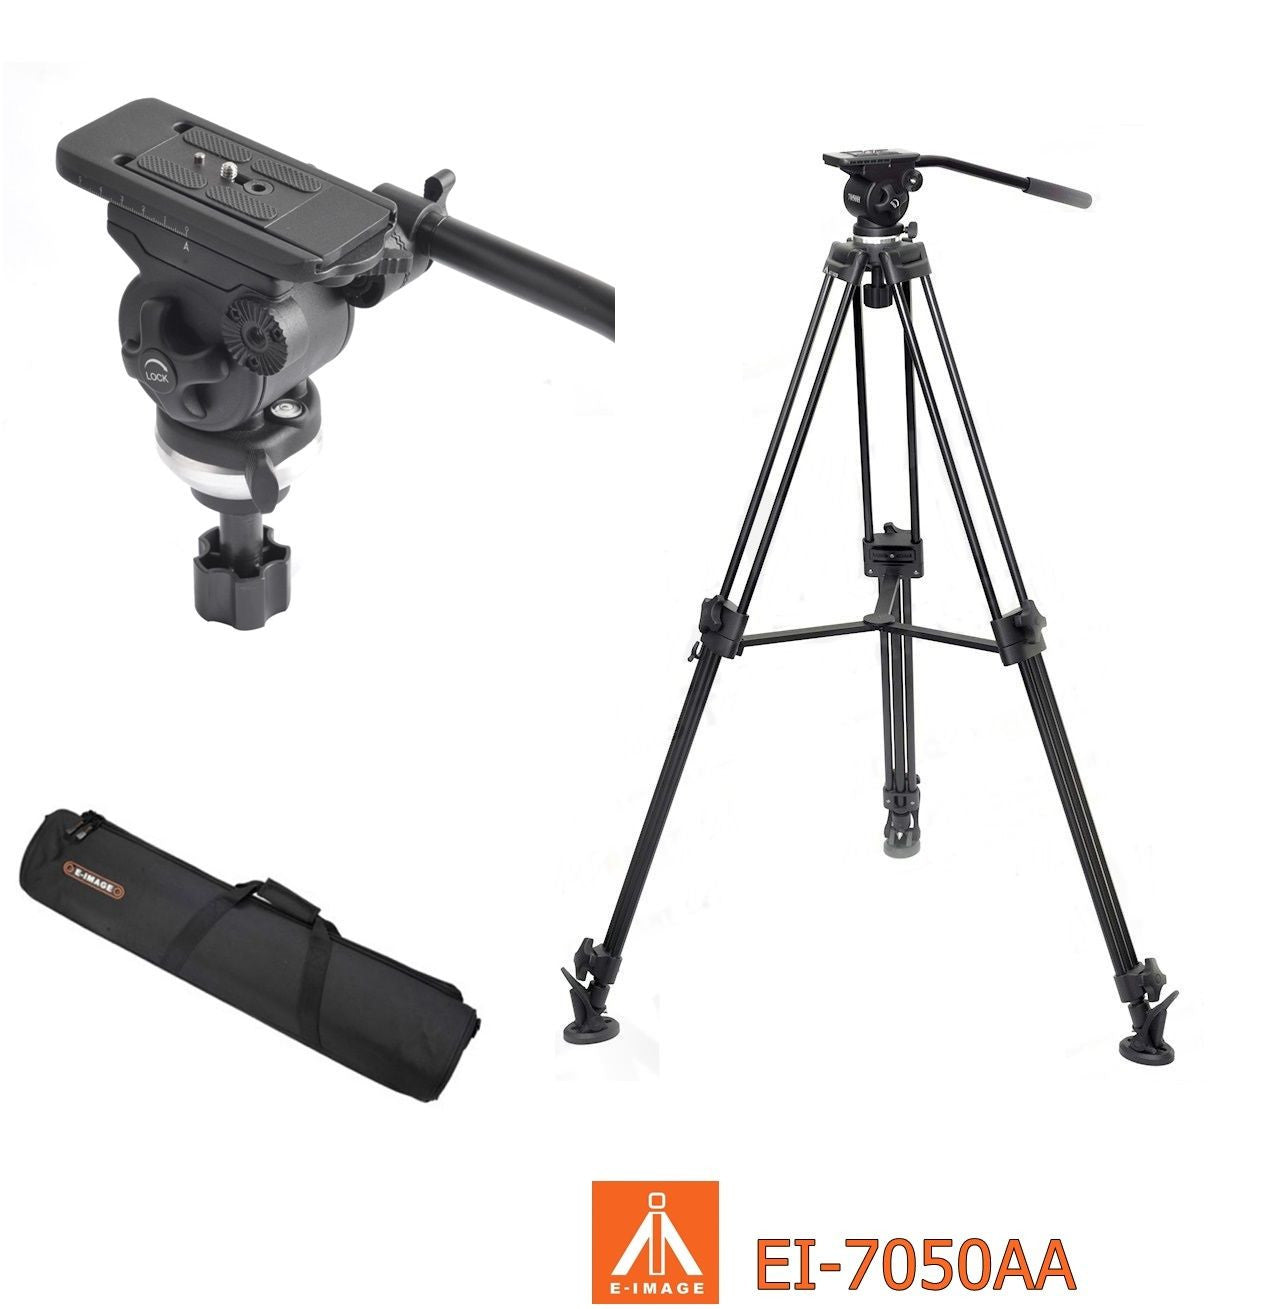 E-Image EI-7050-AA Video Tripod Kit With Fluid Head